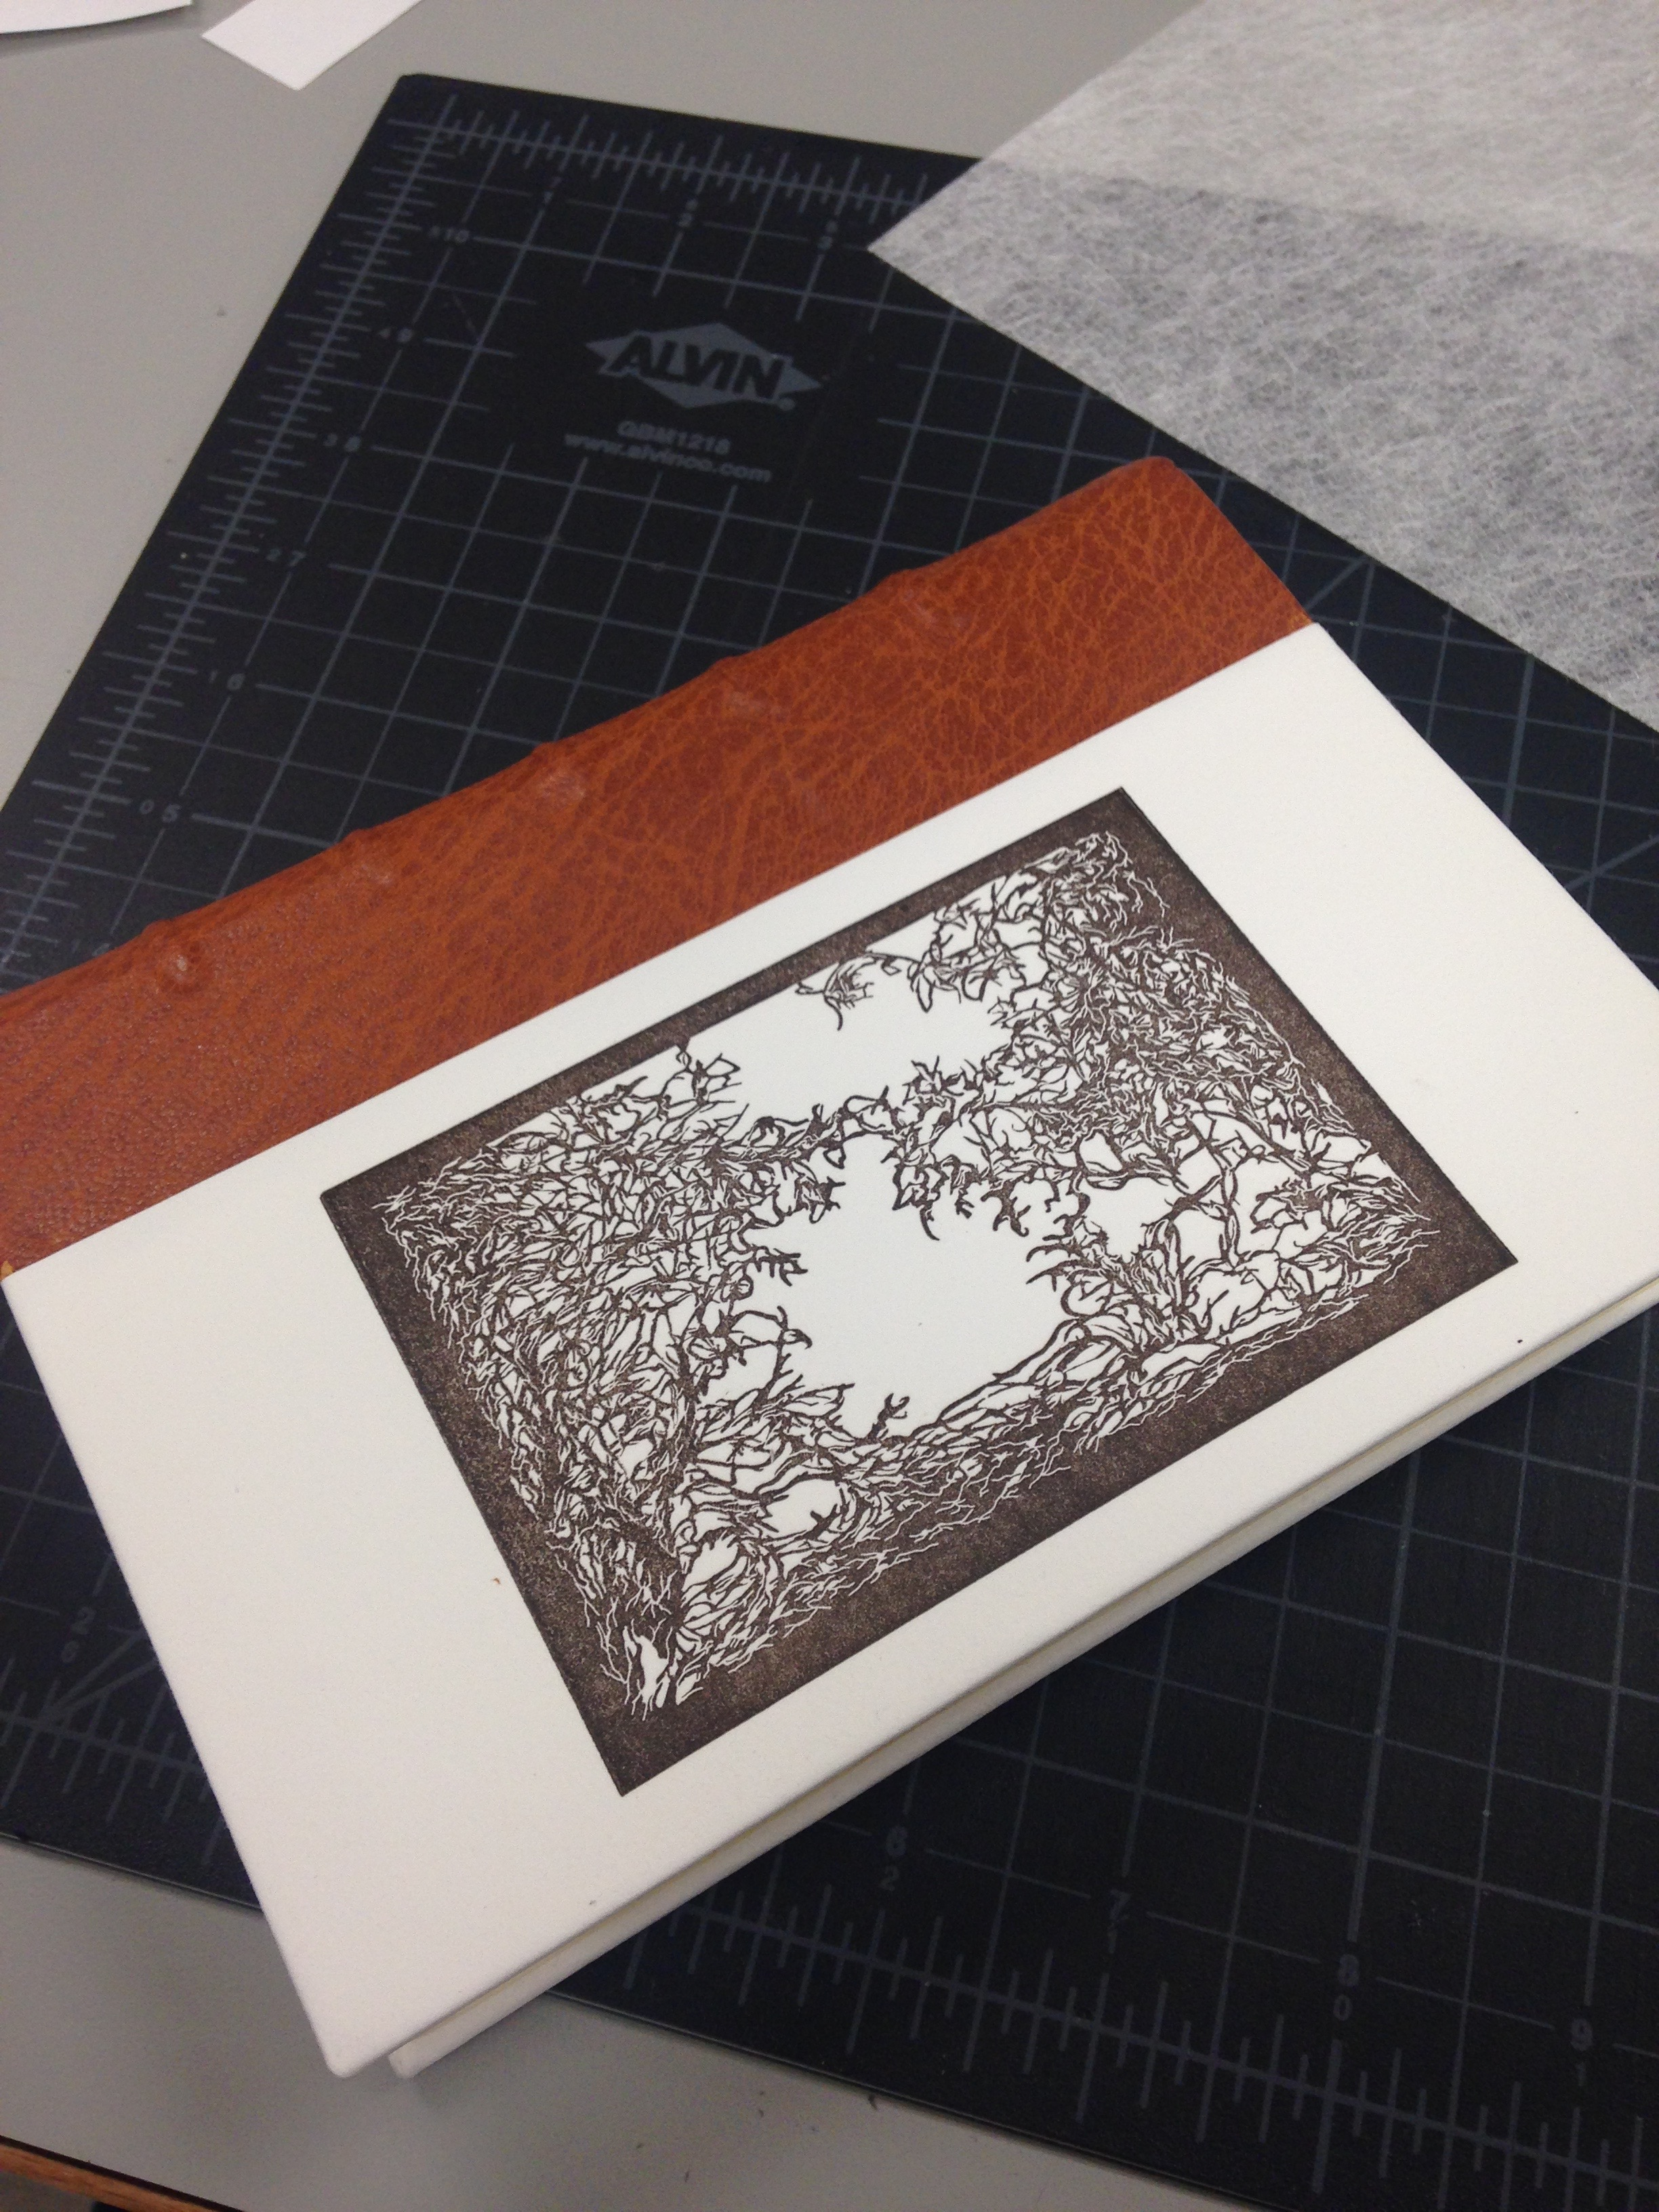 Quarter-Leather: Relief-Print Cover